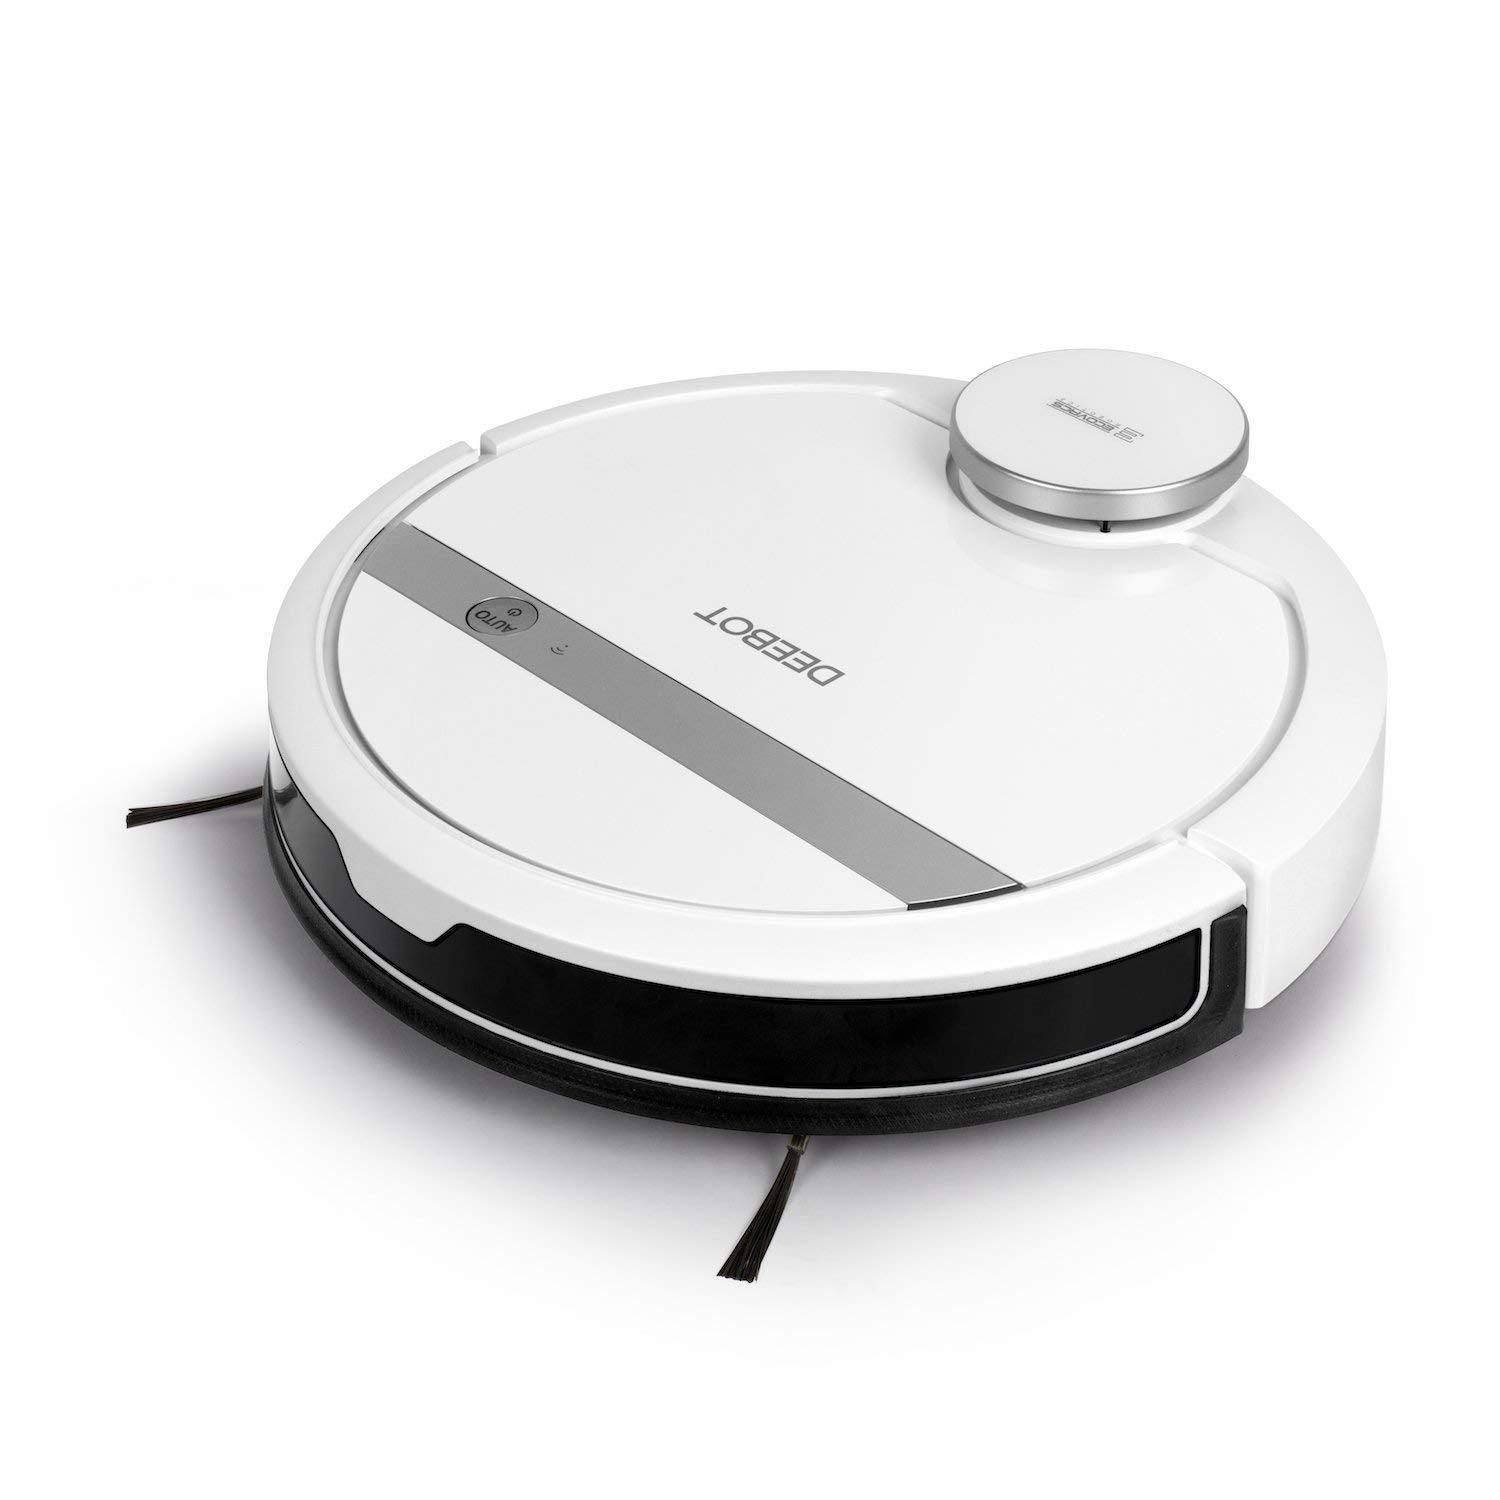 Image for ECOVACS Robotics - DEEBOT 900 App-Controlled Robot Vacuum - White from Circuit City